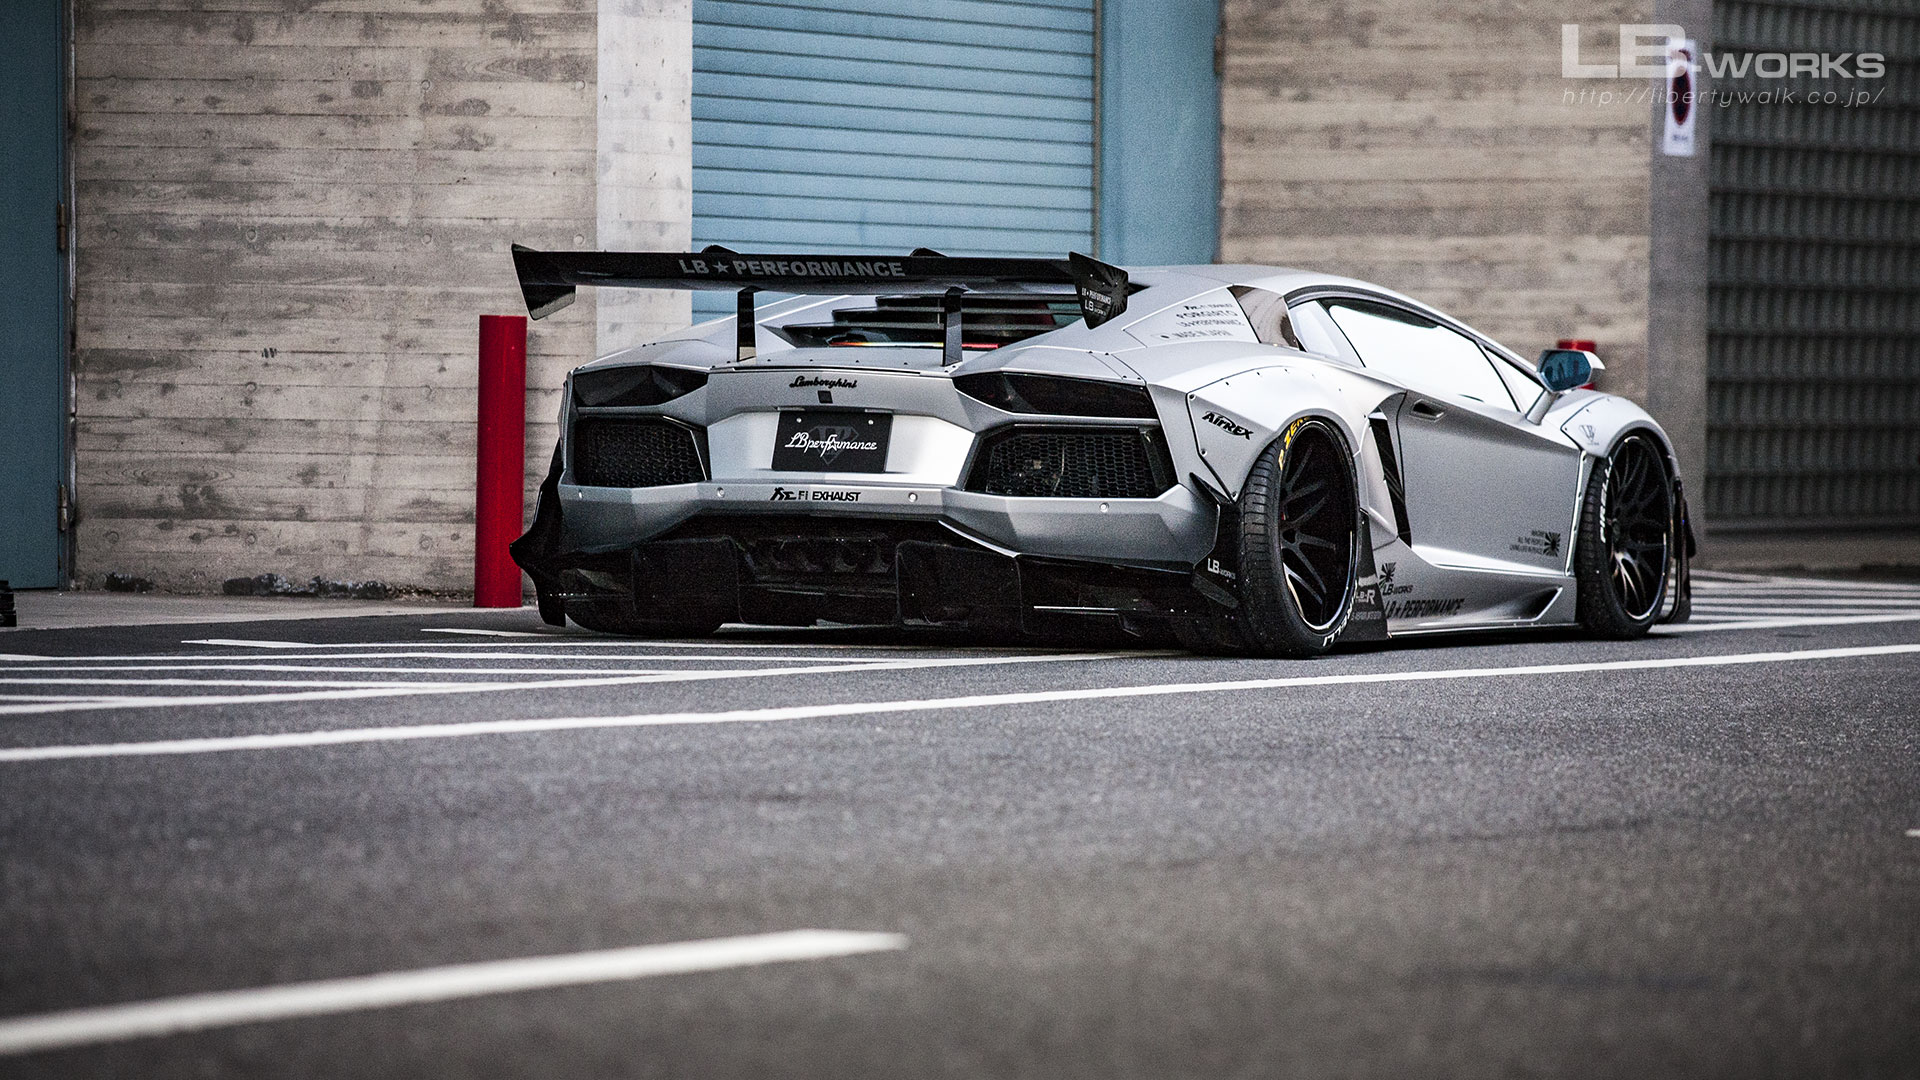 166 LB-WORKS Lamborghini AVENTADOR Limited Edition